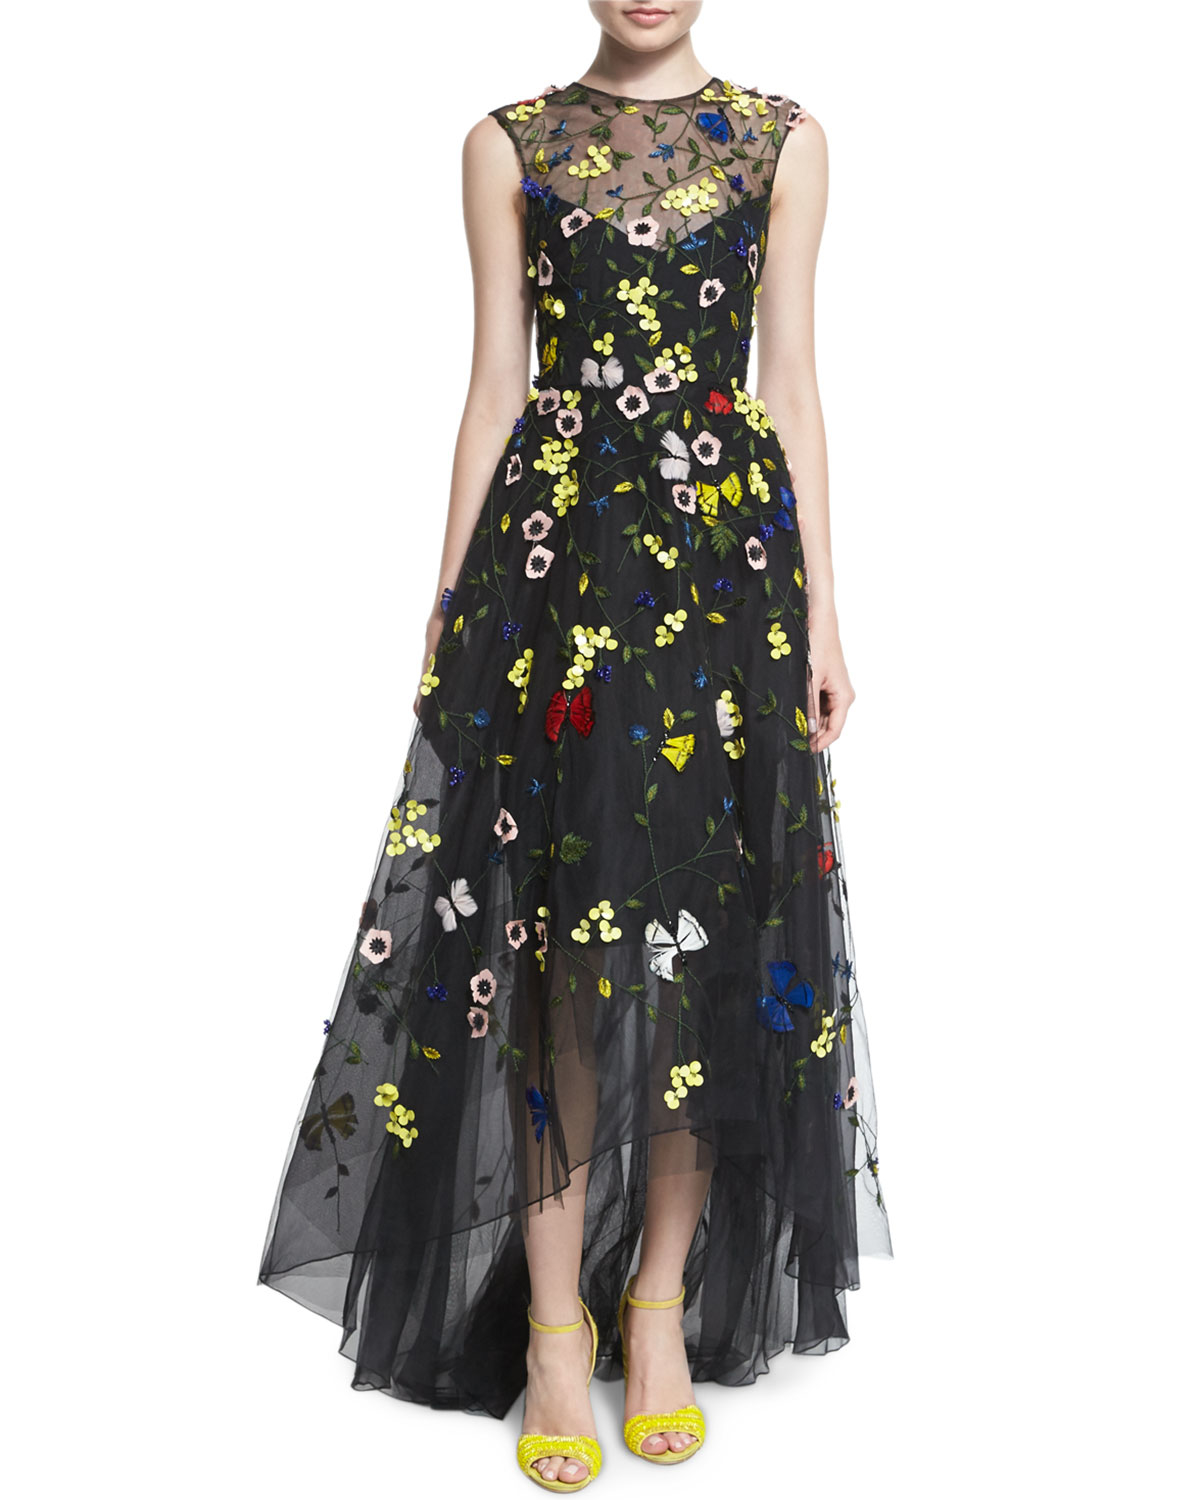 Monique Lhuillier Floral-embellished High-low Gown - Lyst